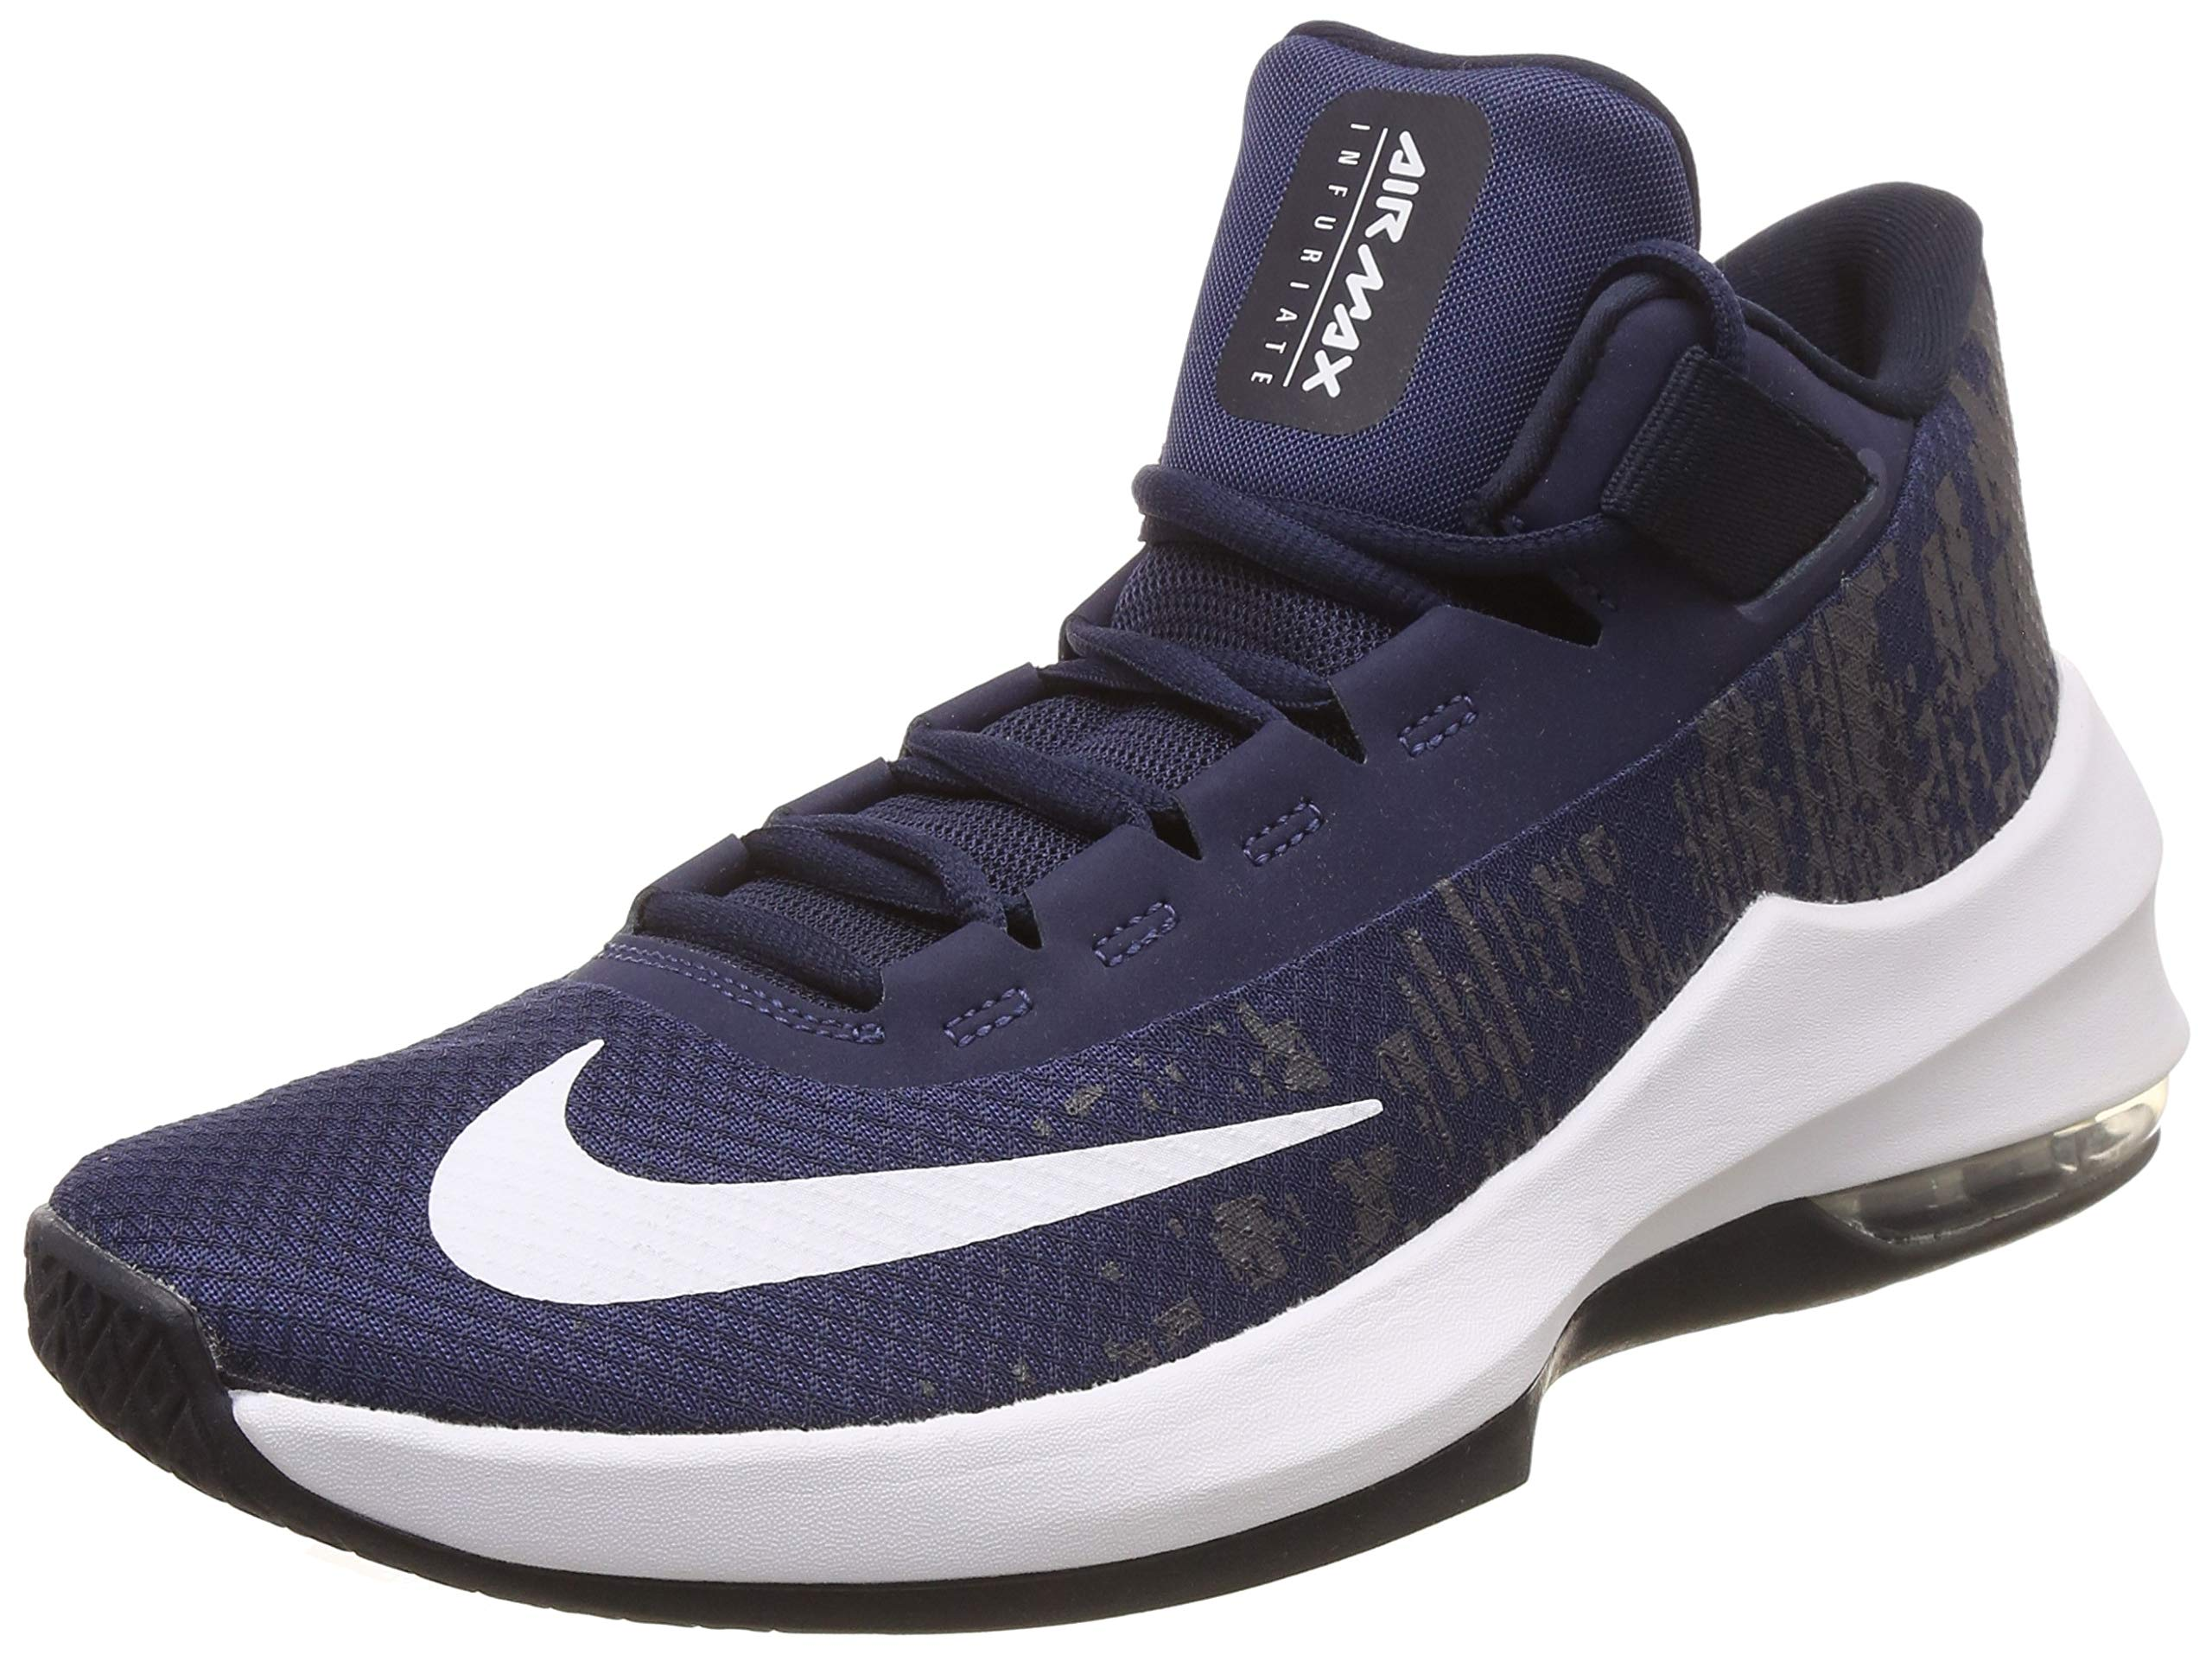 check out 1a5ce 78a8a Nike Air Max Infuriate 2 MID Men s Basketball Shoes